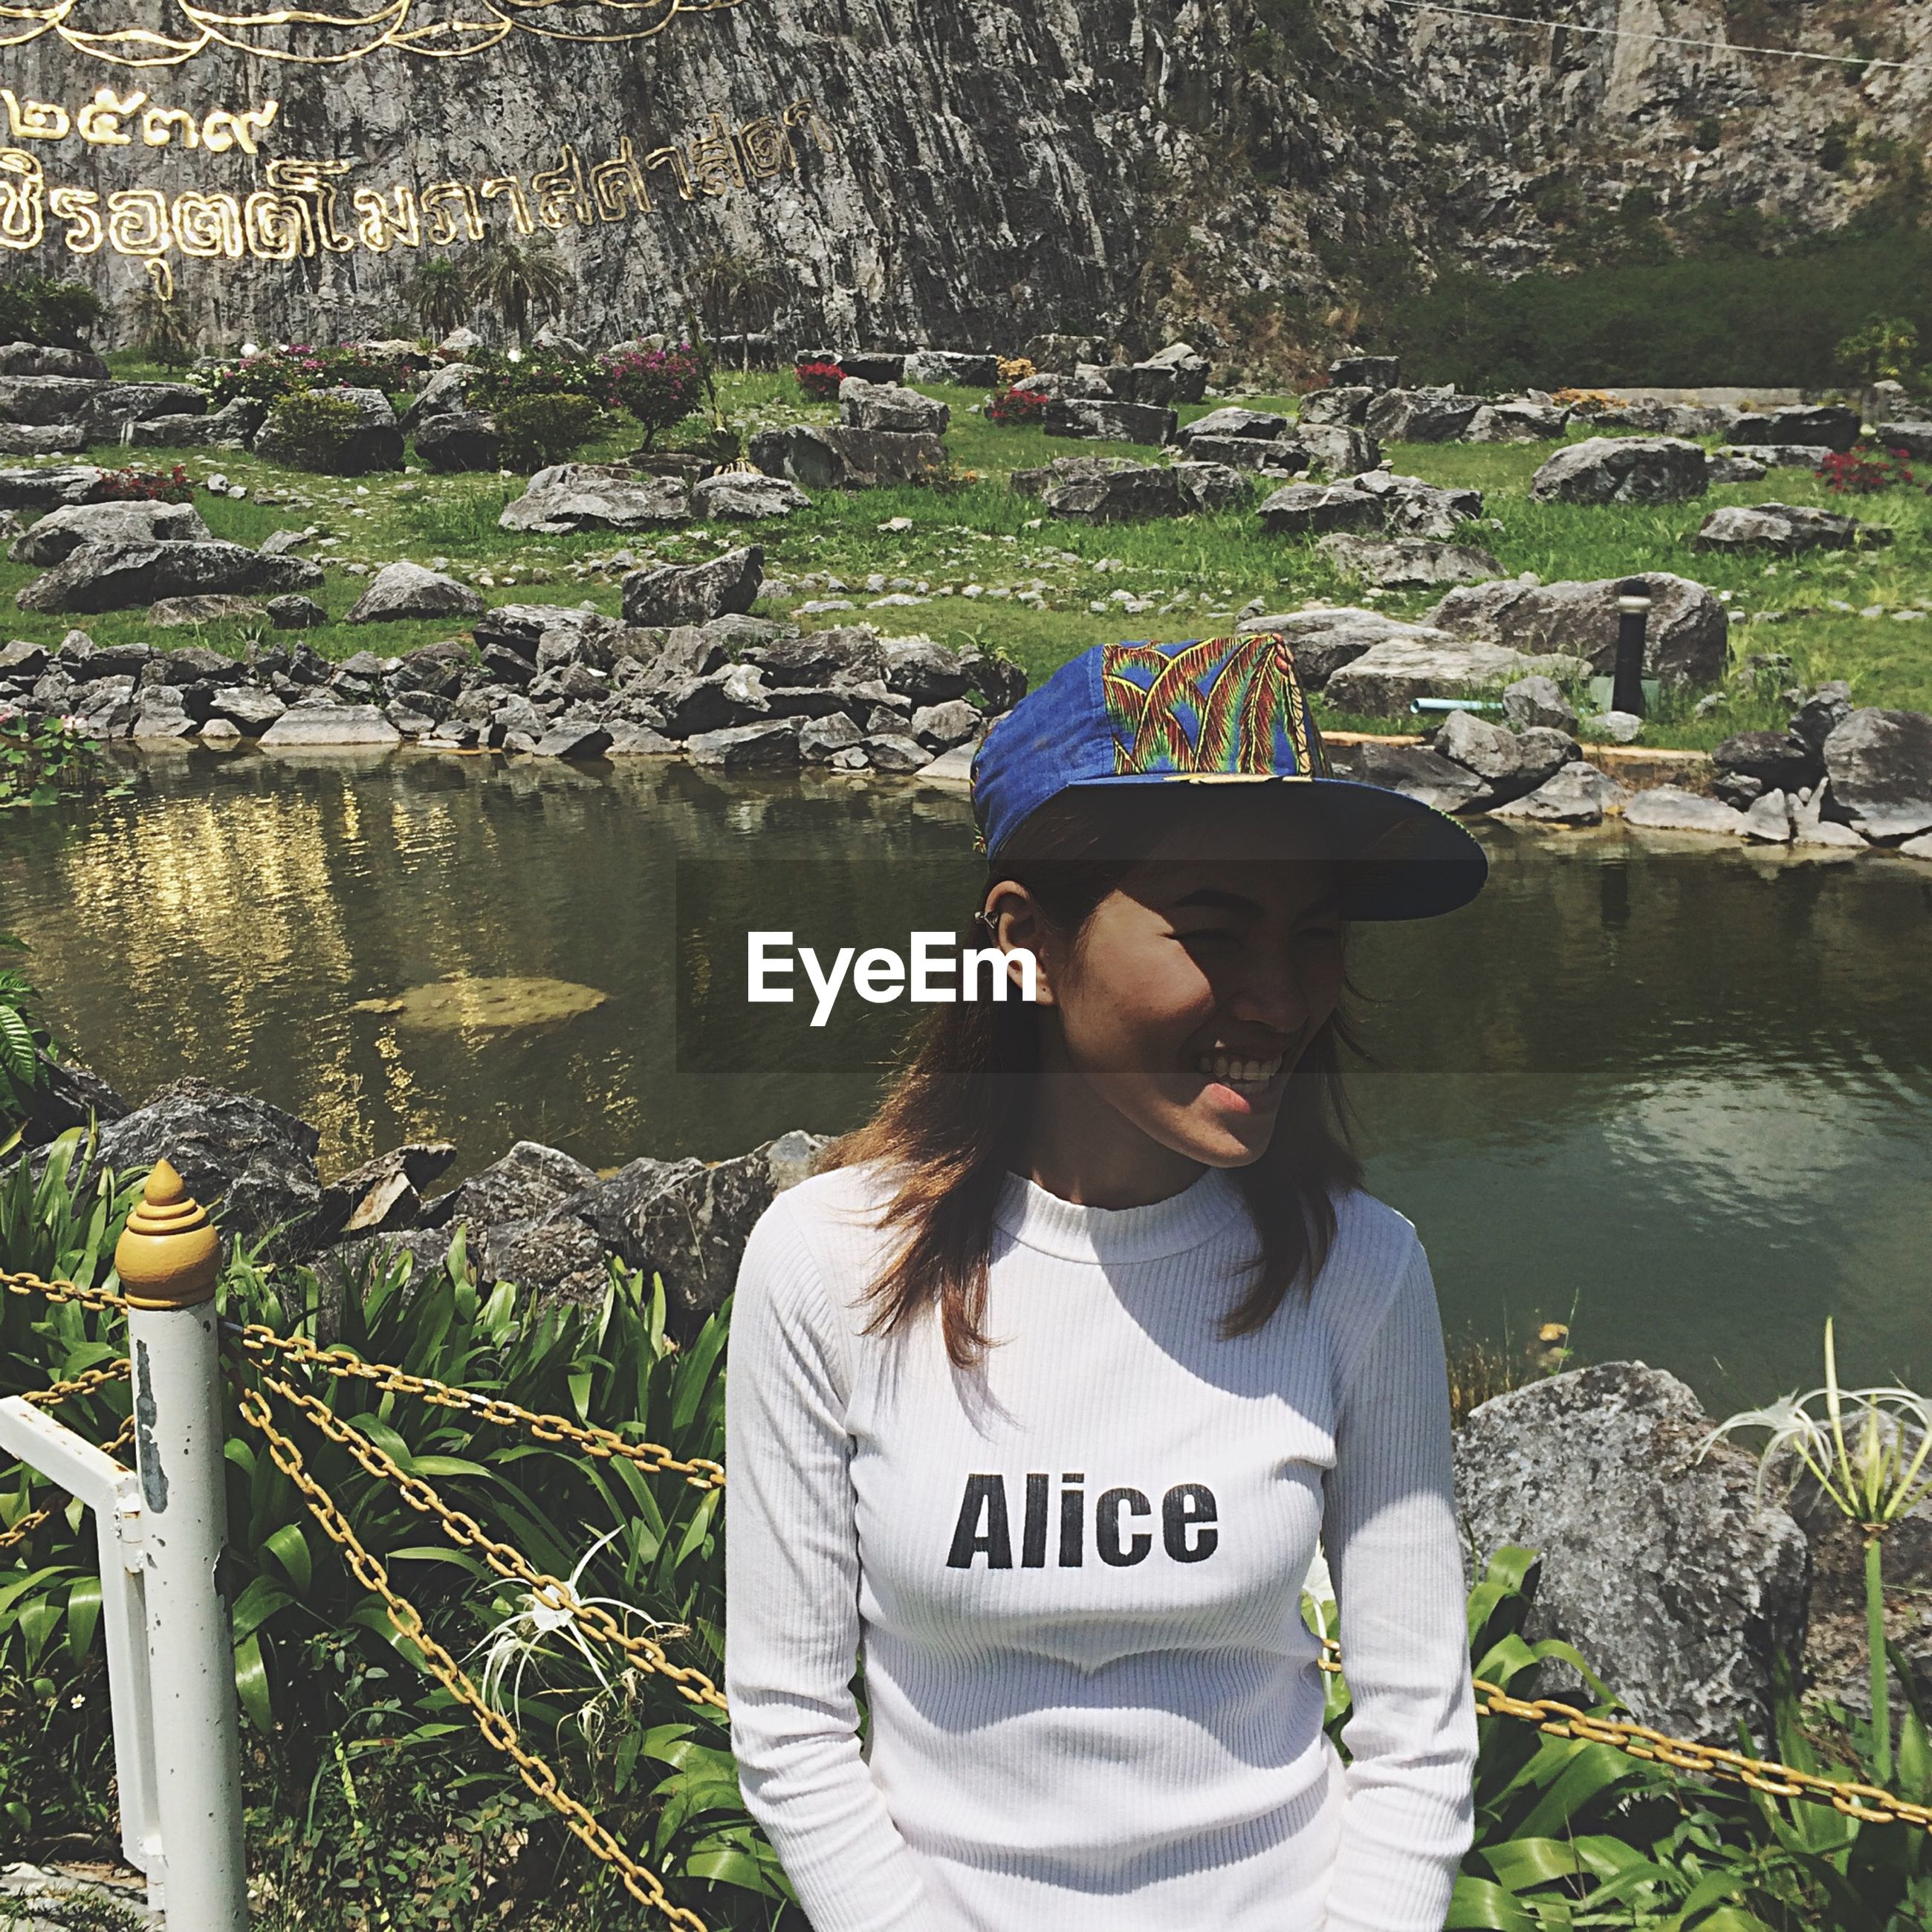 water, lifestyles, leisure activity, casual clothing, lake, standing, person, river, communication, young adult, waist up, day, rear view, nature, text, sitting, outdoors, three quarter length